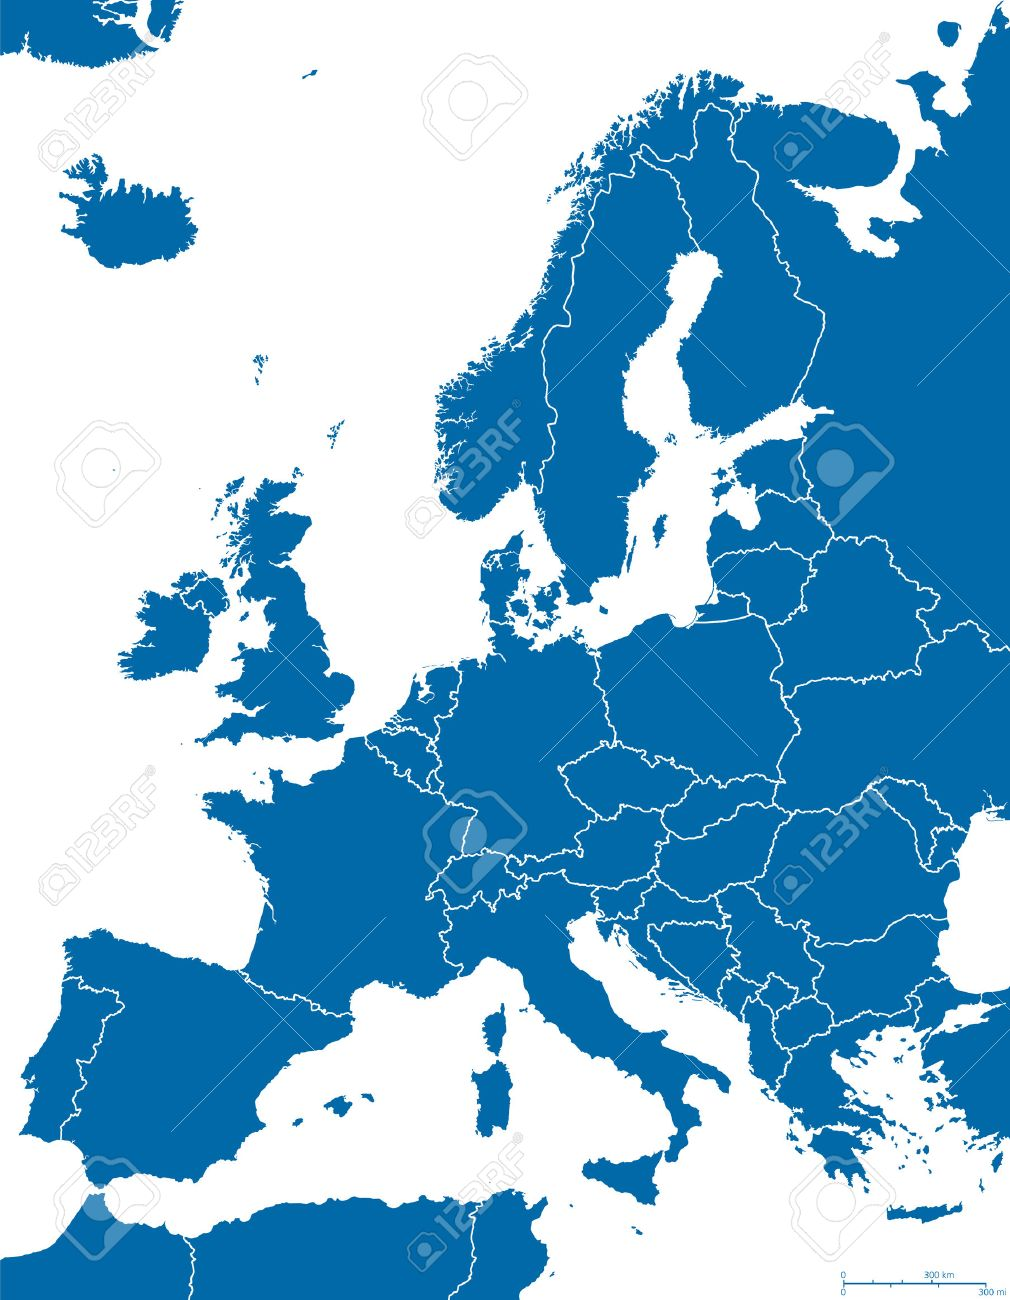 europe political map and surrounding region with all countries and national borders blue outline illustration